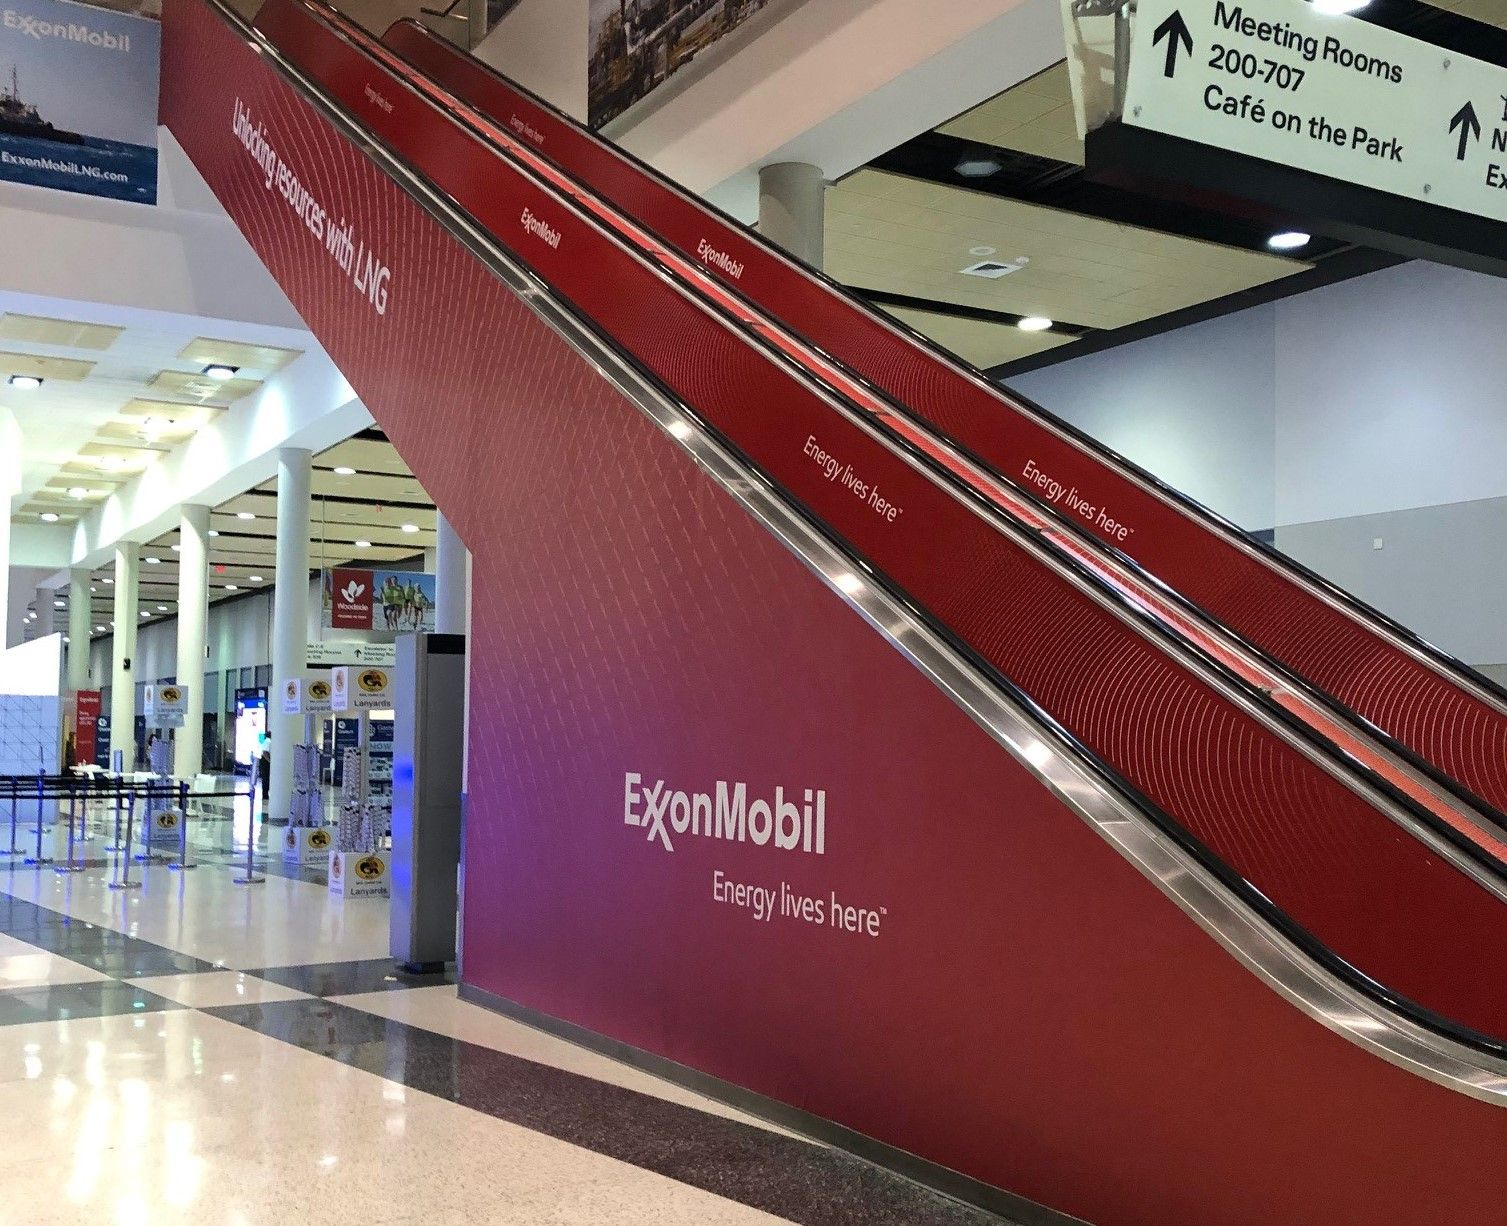 Escalator Panels Inside and Outside